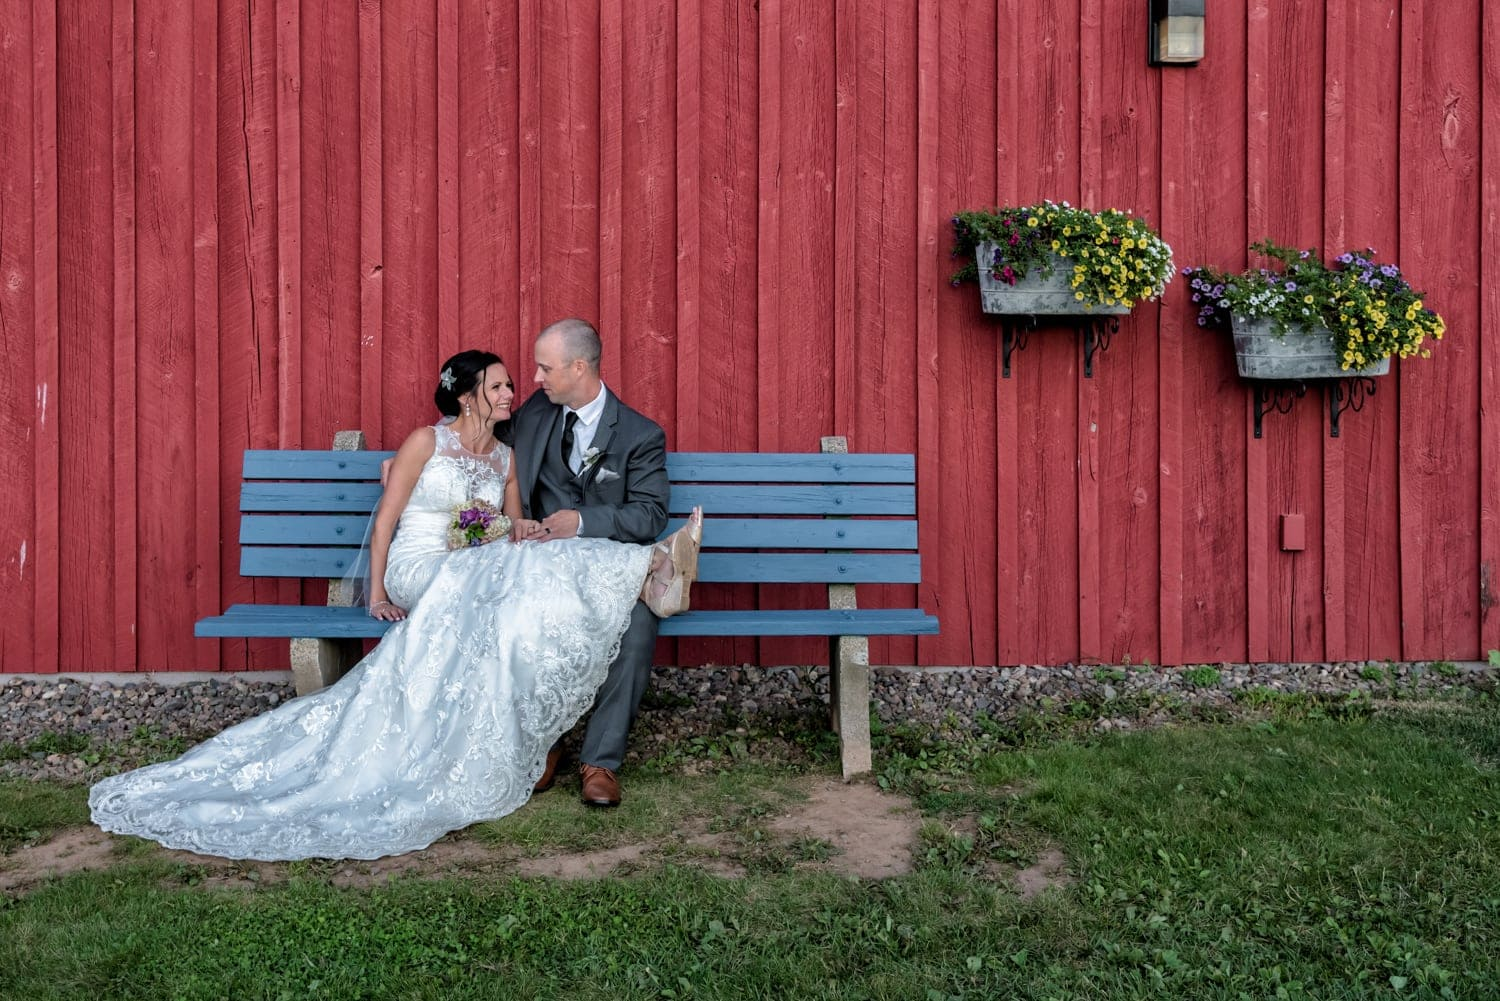 The bride and groom sitting on a wooden blue bench against the Heritage Barn at the Old Orchard Inn, Wolfville NS.